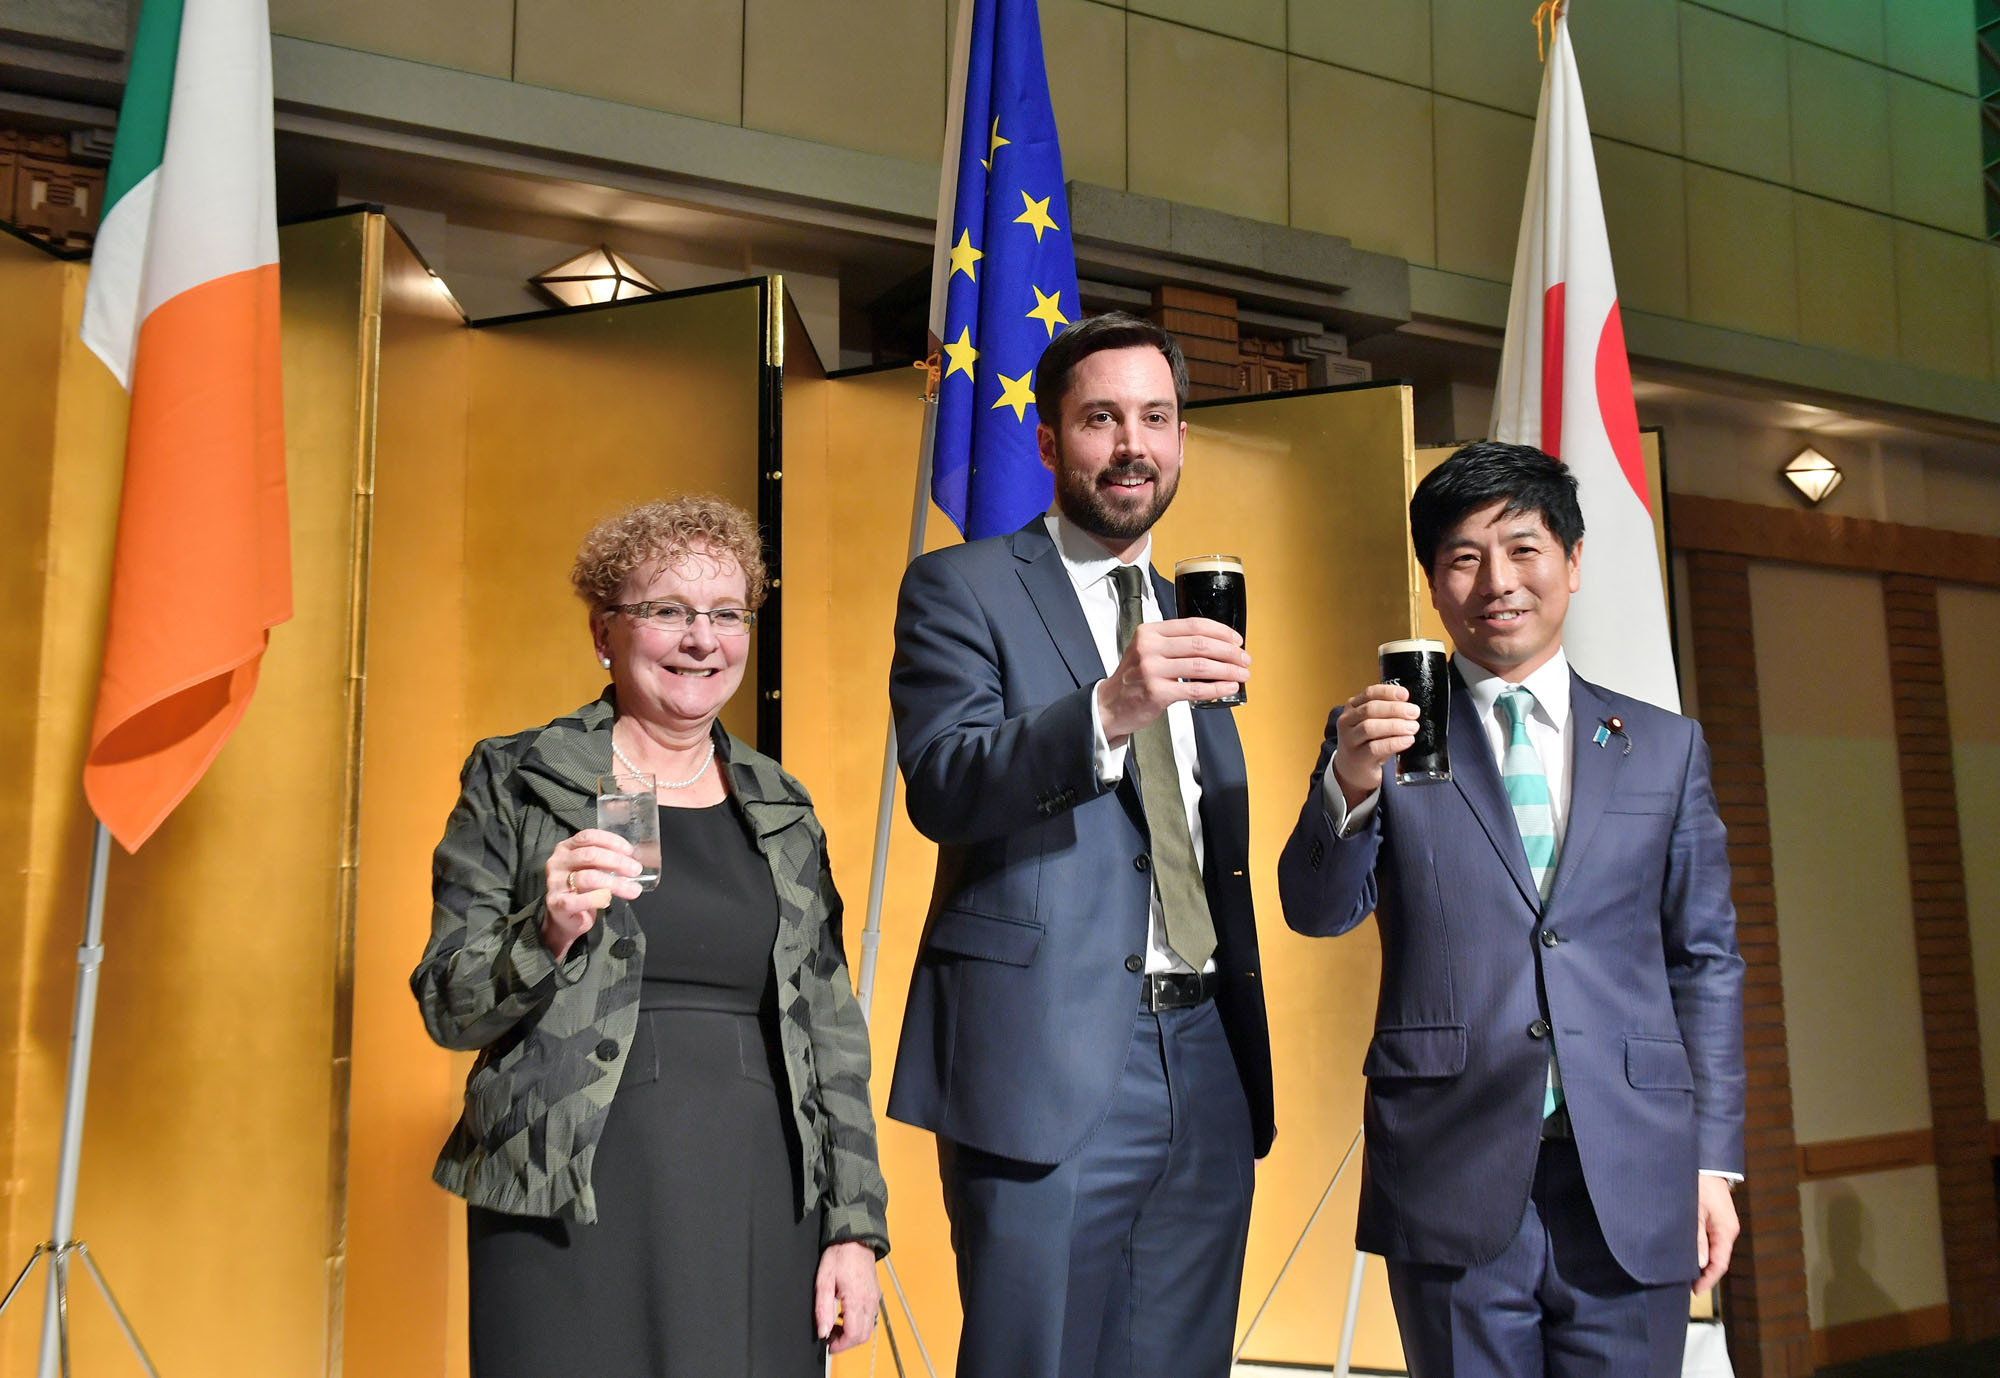 Irish Ambassador Anne Barrington (left), Irish Minister for Housing, Planning and Local      Government Eoghan Murphy T.D. and Kazuyuki Nakane, state minister for foreign affairs      poses for a photo during a reception to celebrate St. Patrick's Day at Imperial Hotel Tokyo on March 15. yoshiaki miura |